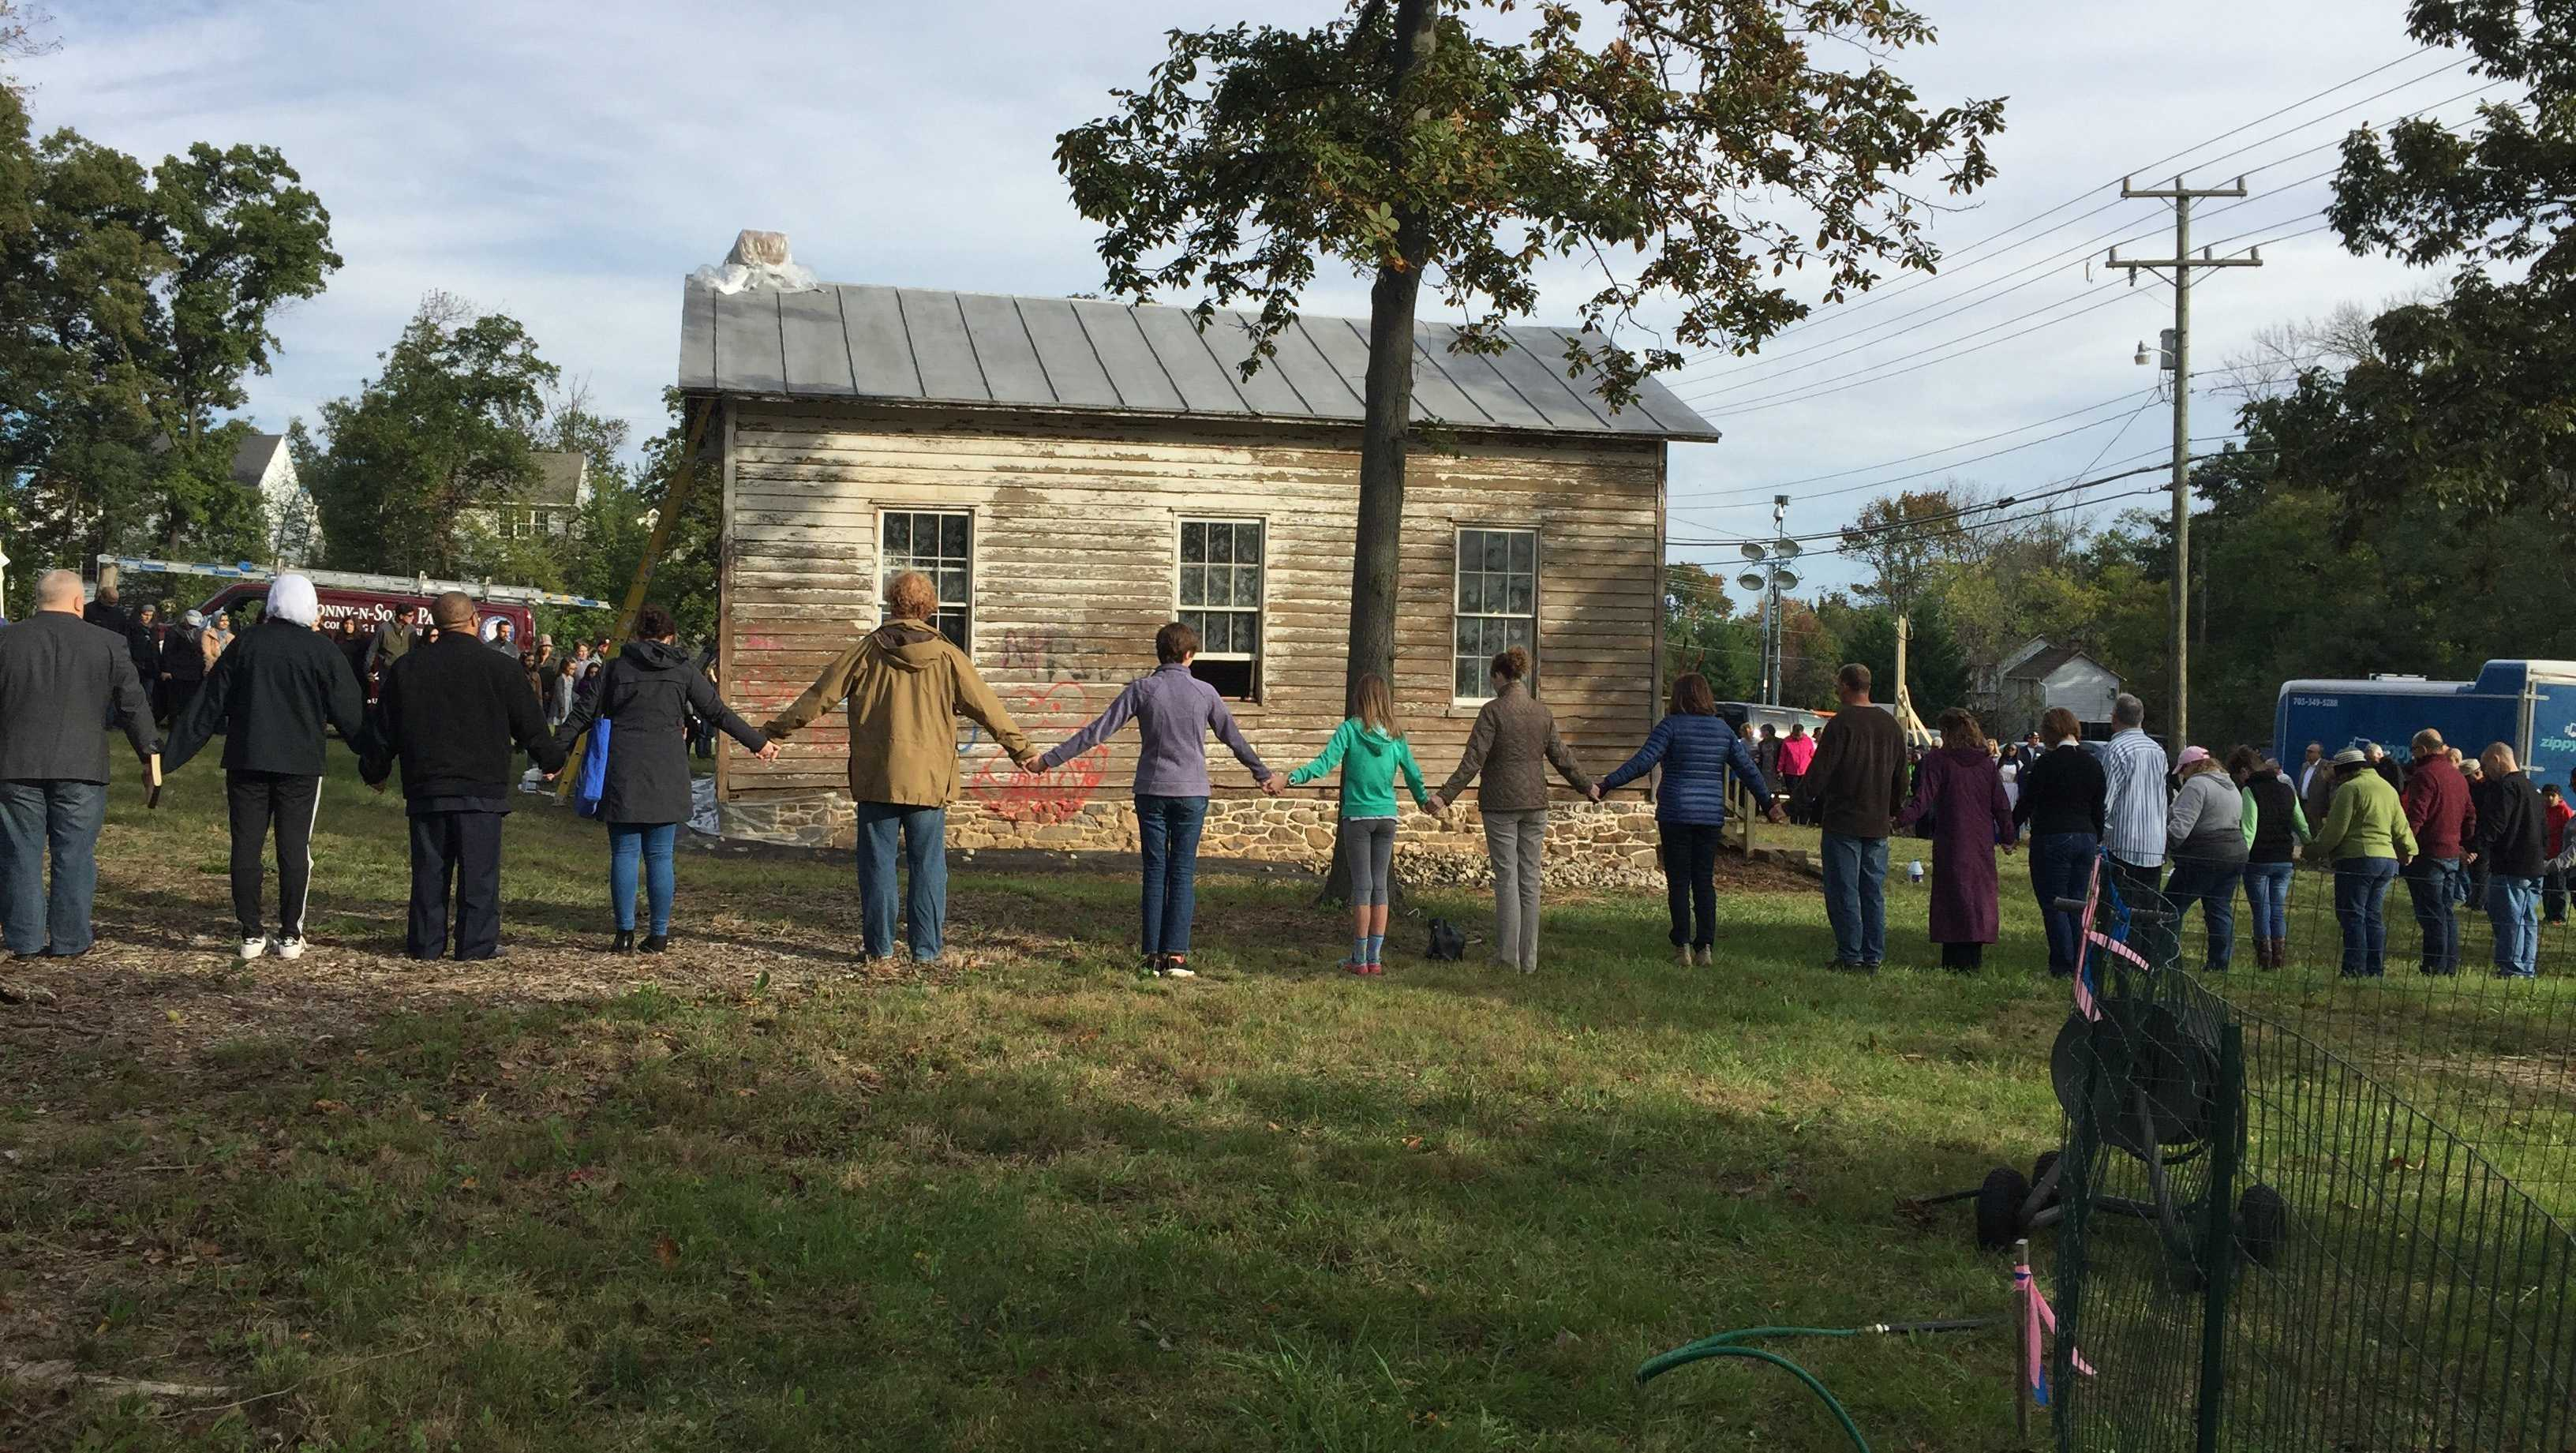 Community members form a unity circle around the school, where they gathered in early October to repair damage done by vandals.